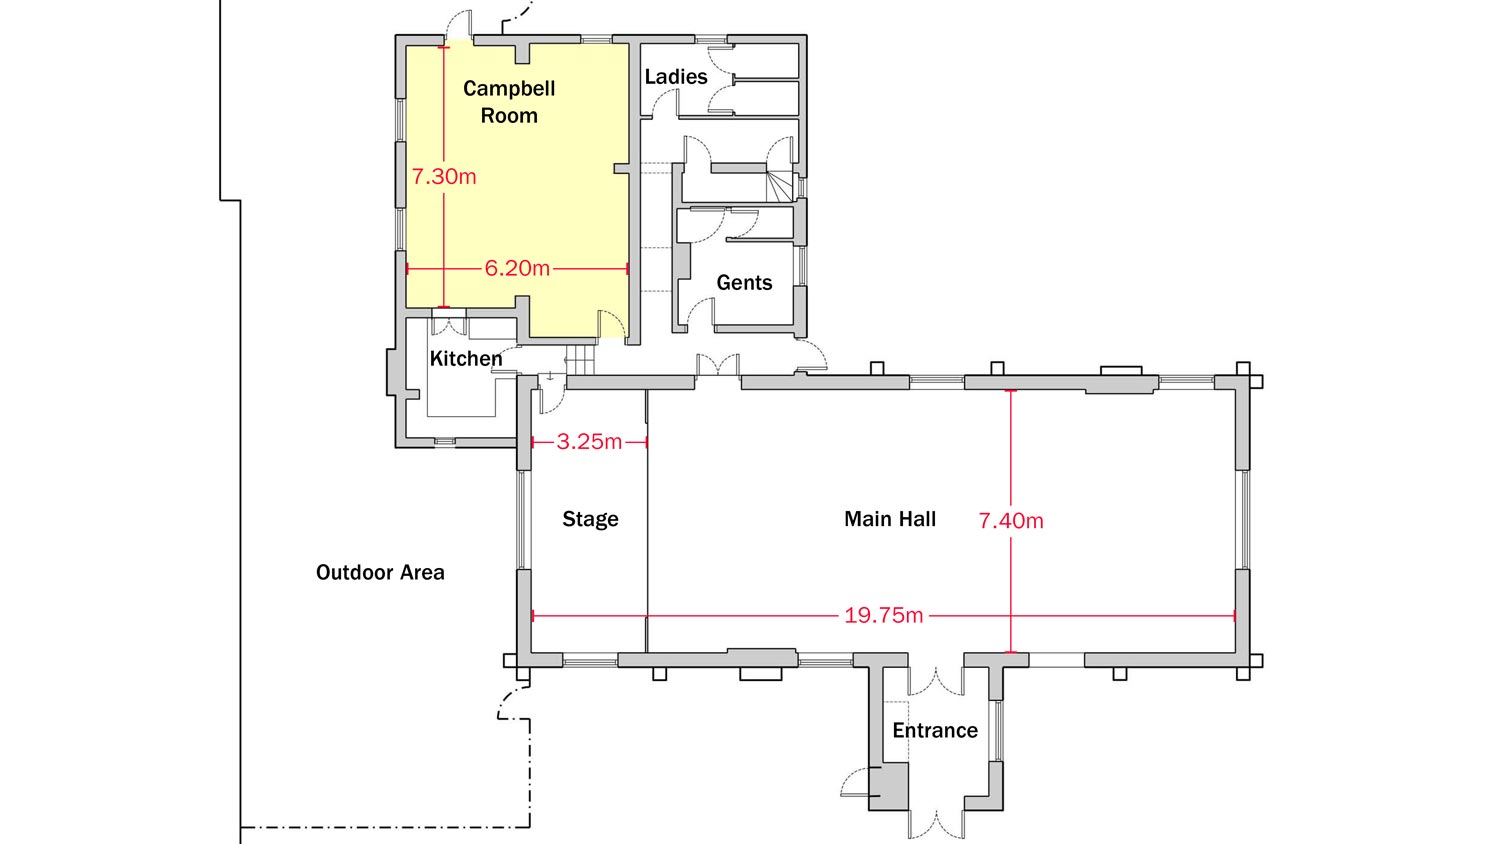 Plan of Dumbleton Village Hall with dimensions